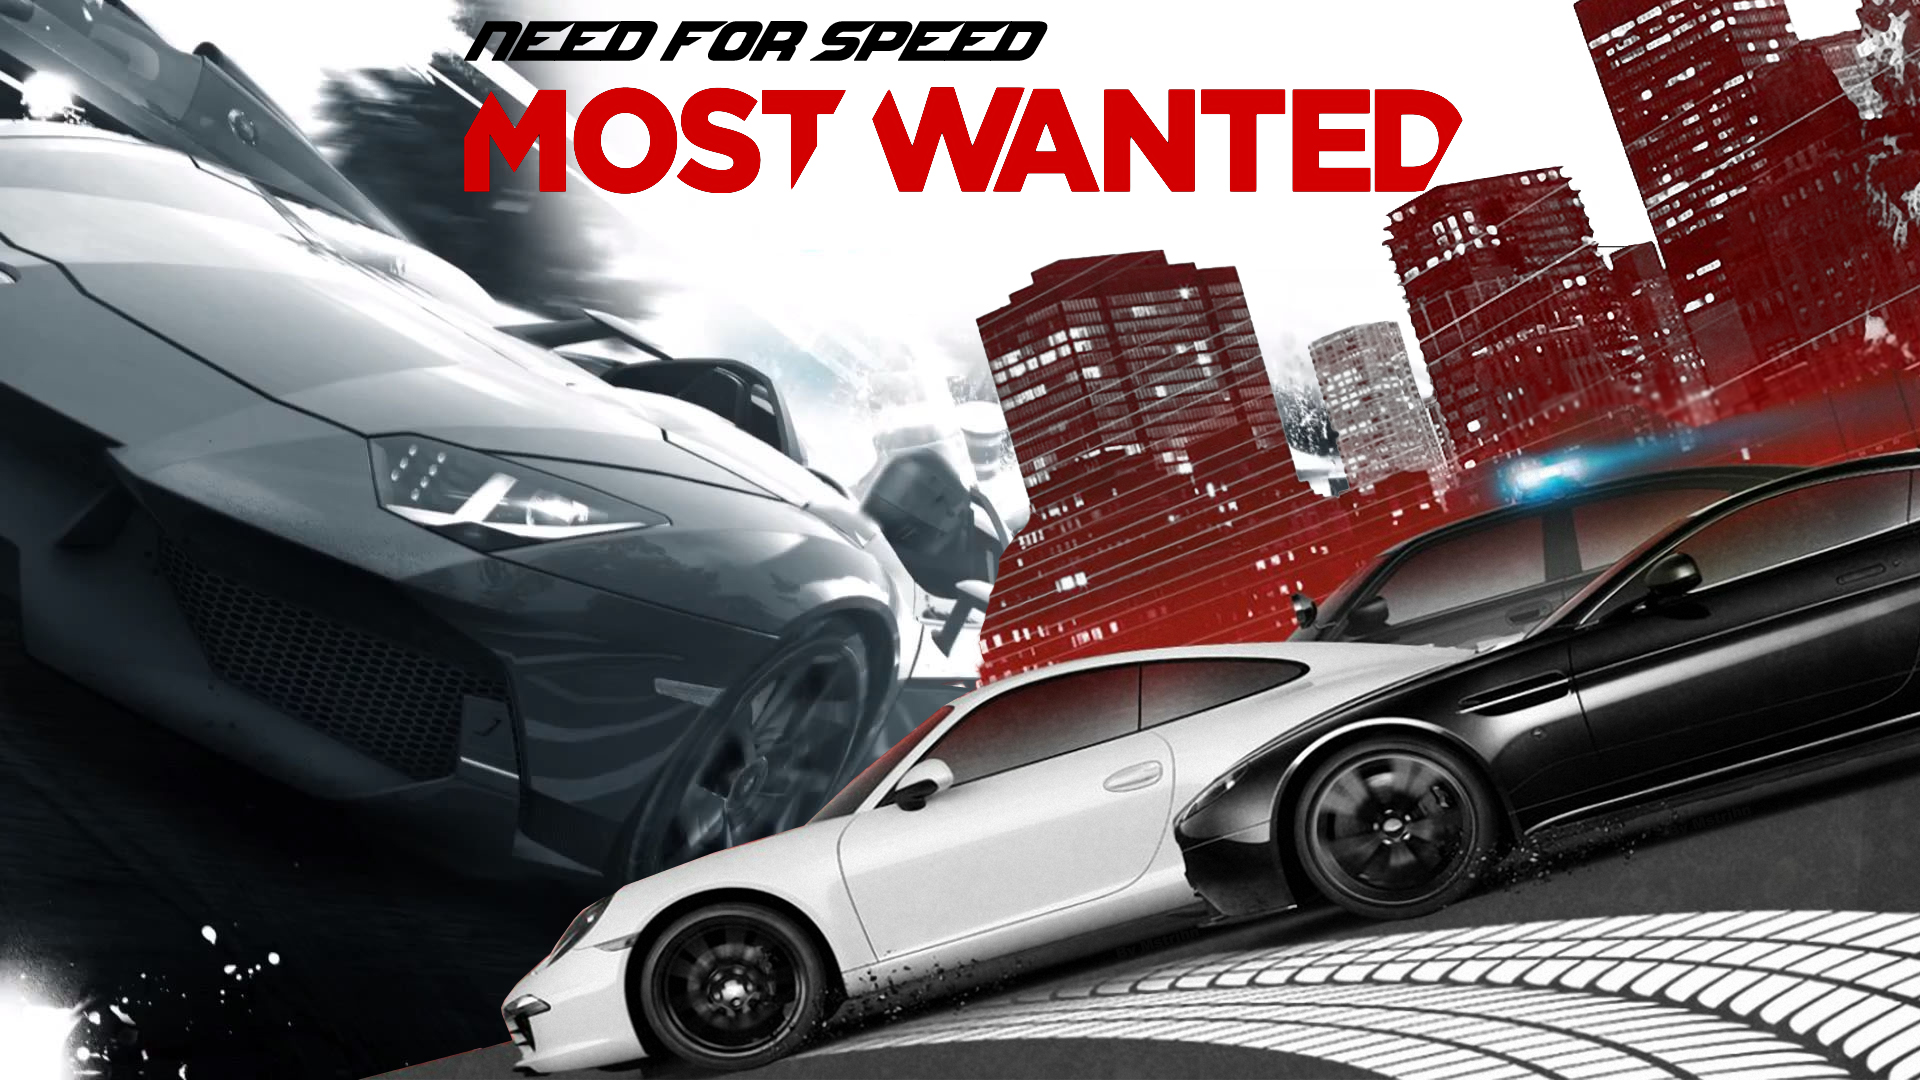 Need for Speed: Most Wanted telecharger gratuit de PC et Torrent